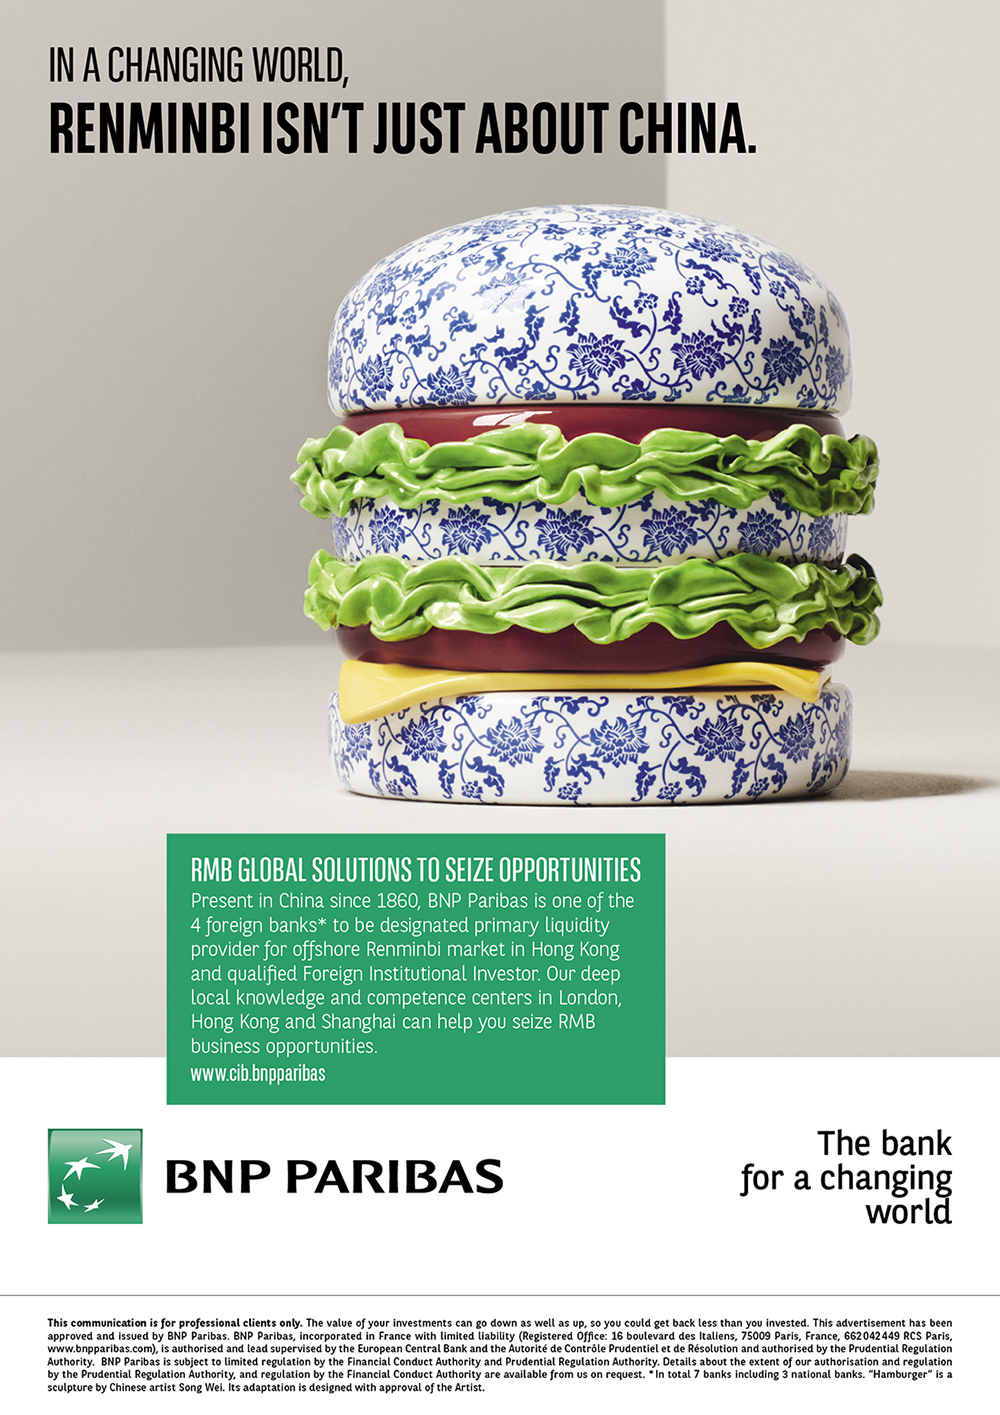 bnp-paribas-publicite-marketing-banque-in-a-changing-world-la-banque-un-monde-qui-change-2015-publicis-conseil-1